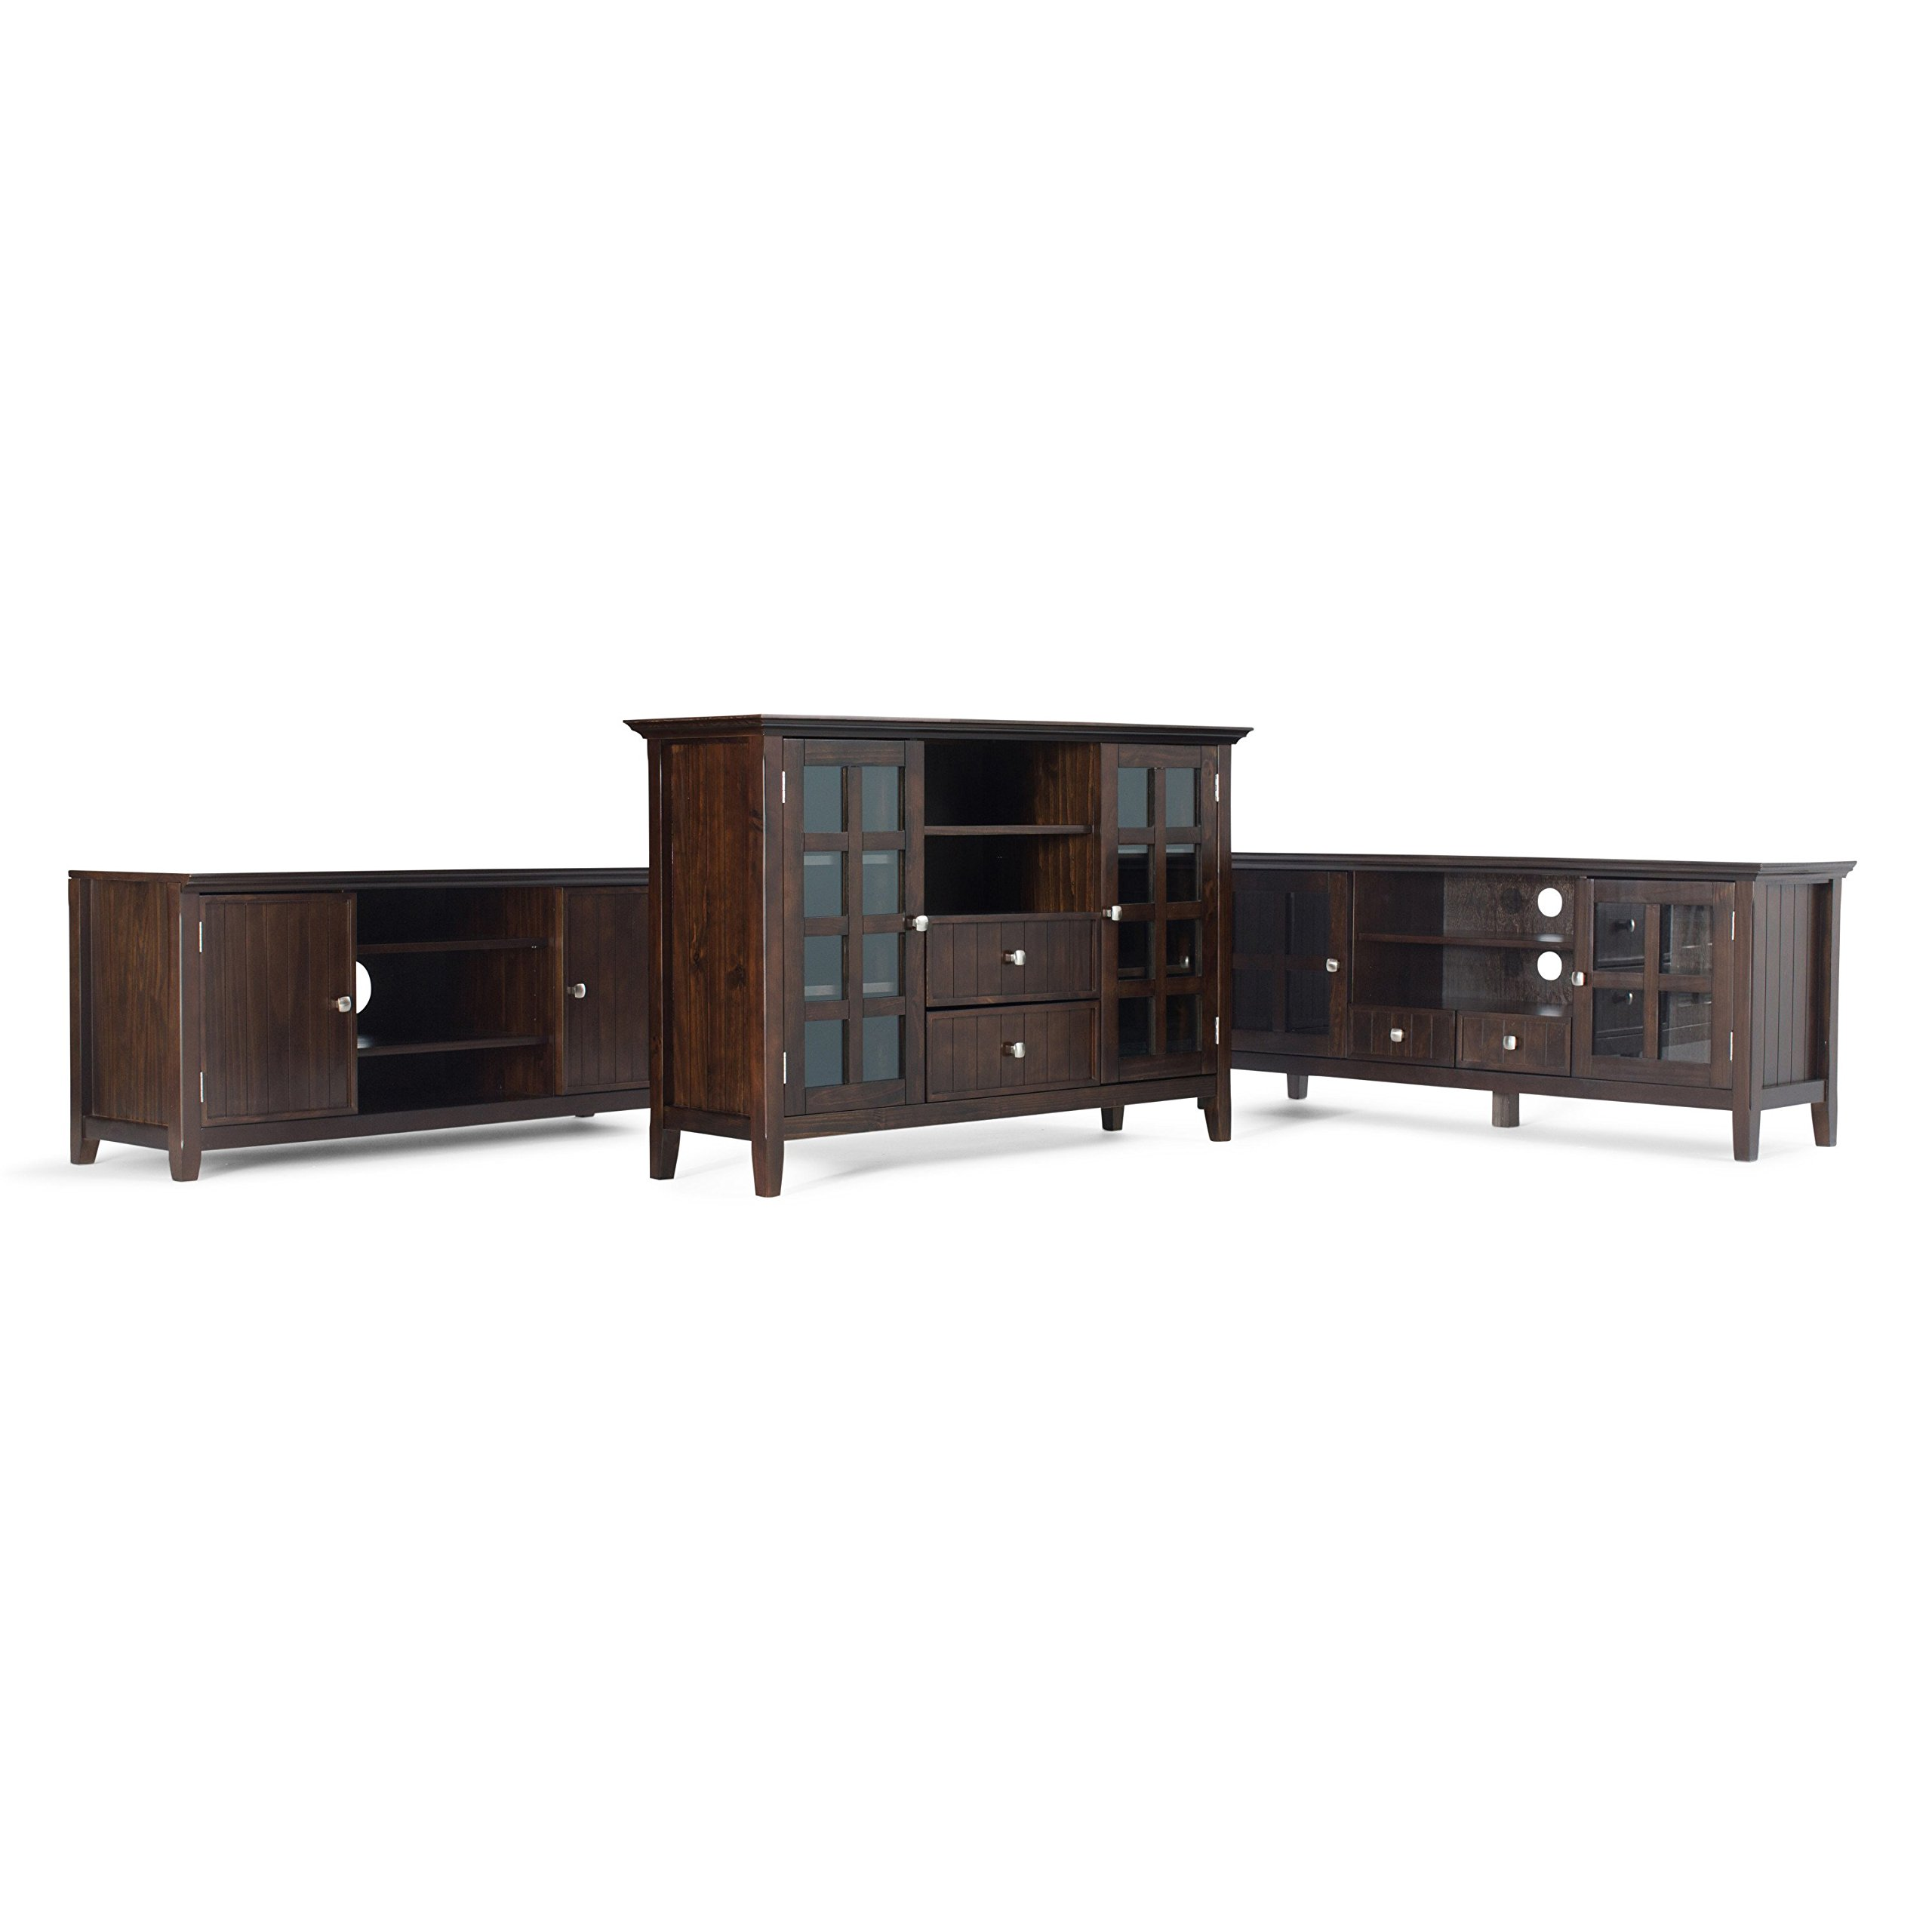 Simpli Home Acadian Solid Wood TV Media Stand for TVs up to 60'', Rich Tobacco Brown by Simpli Home (Image #6)